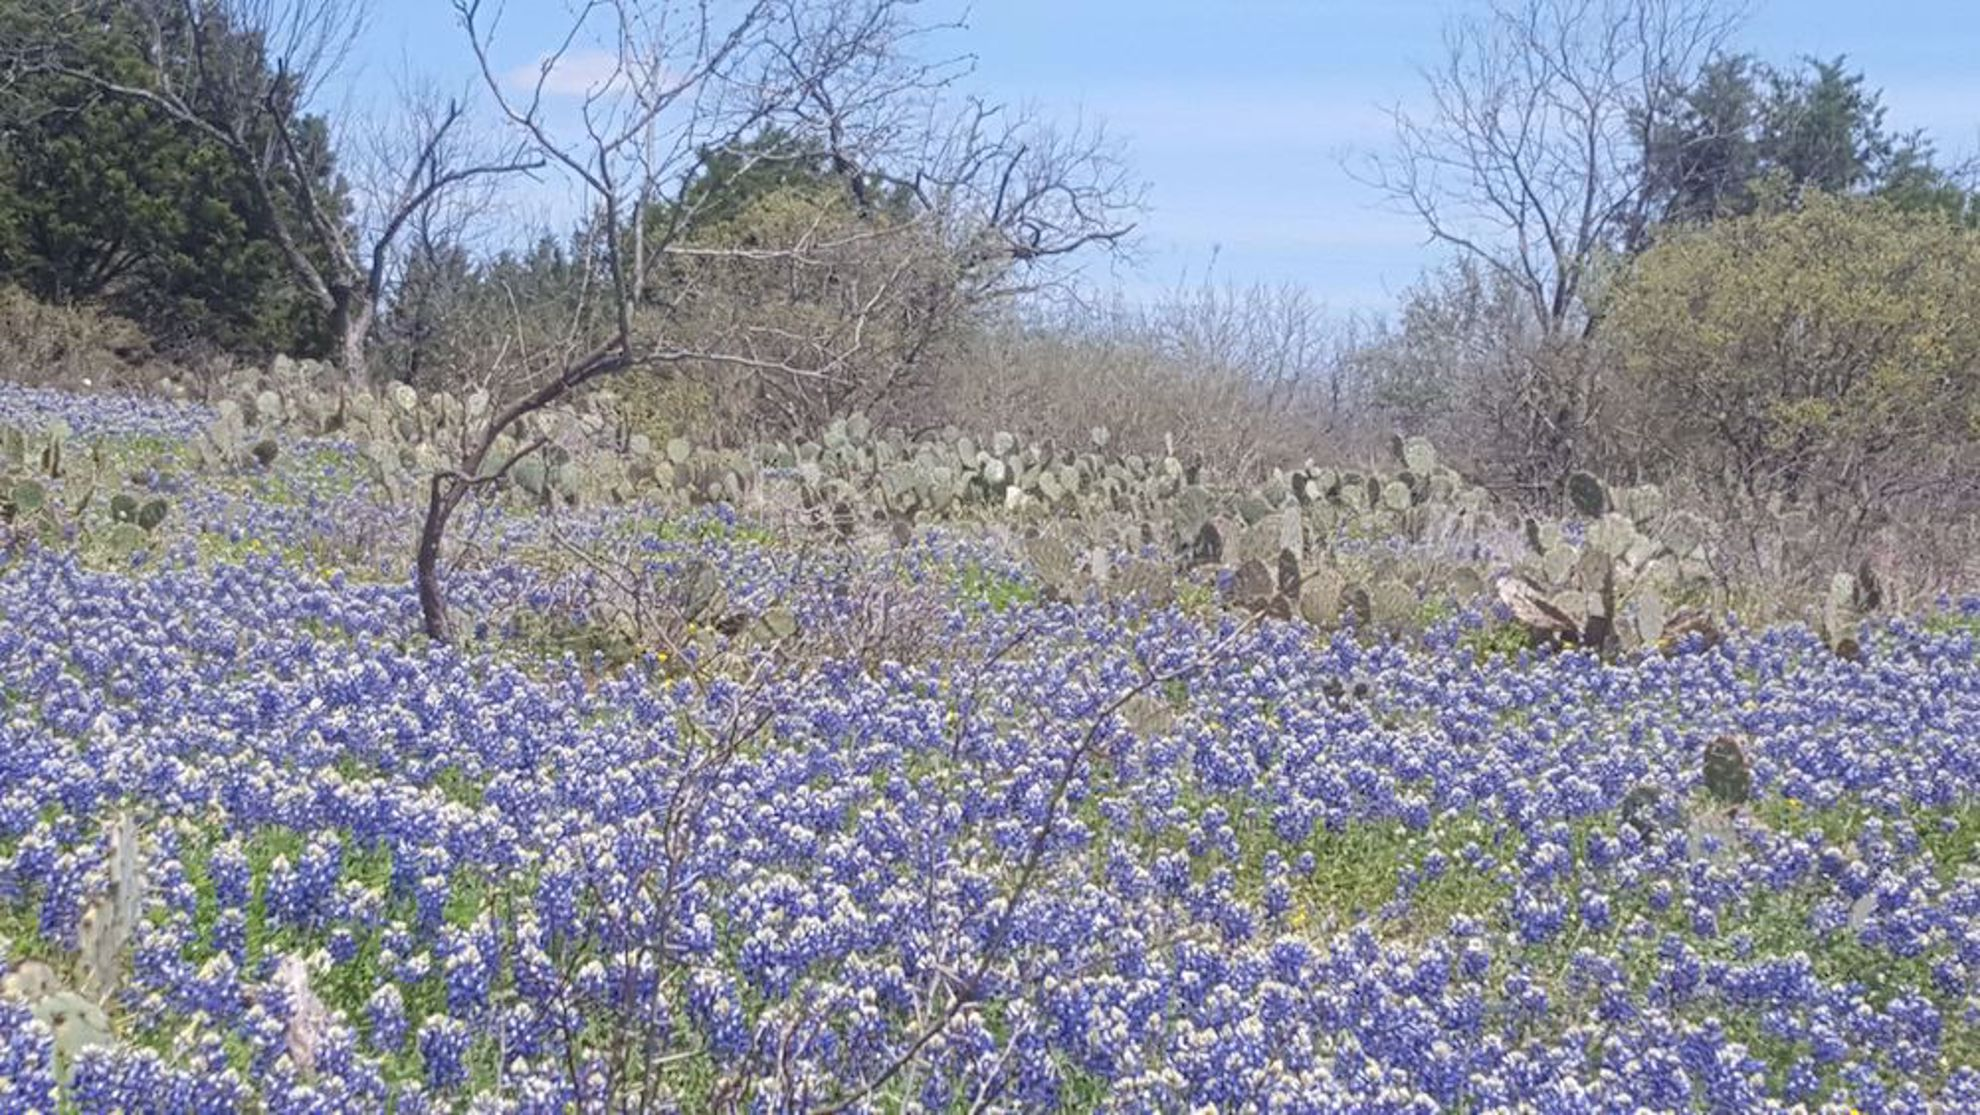 Bluebonnets and cacti in Texas